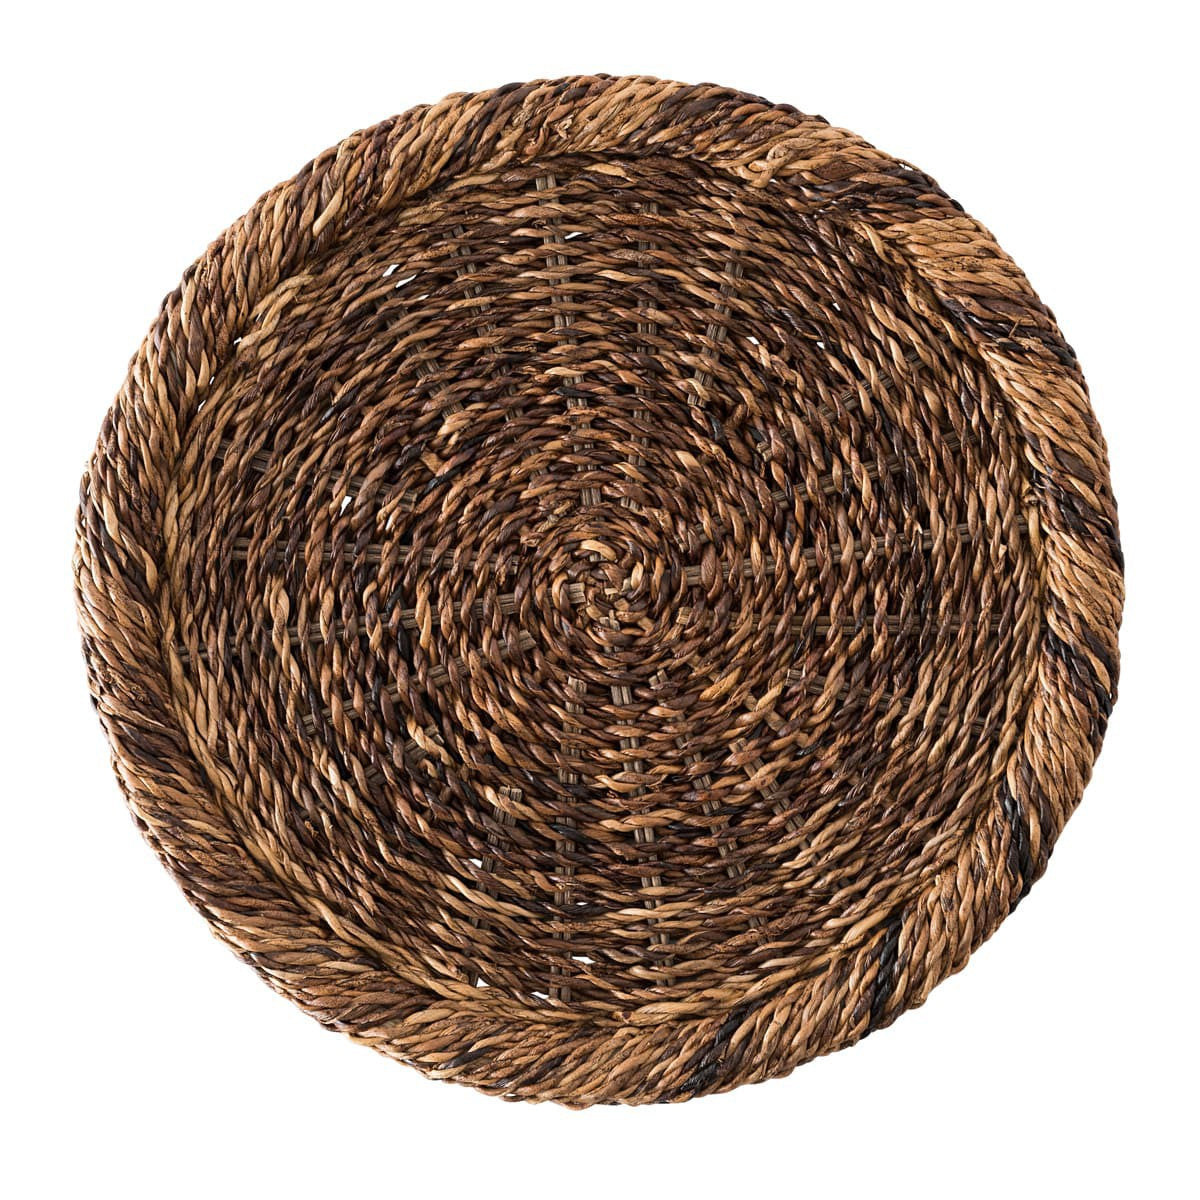 Rustic Rope Natural Charger